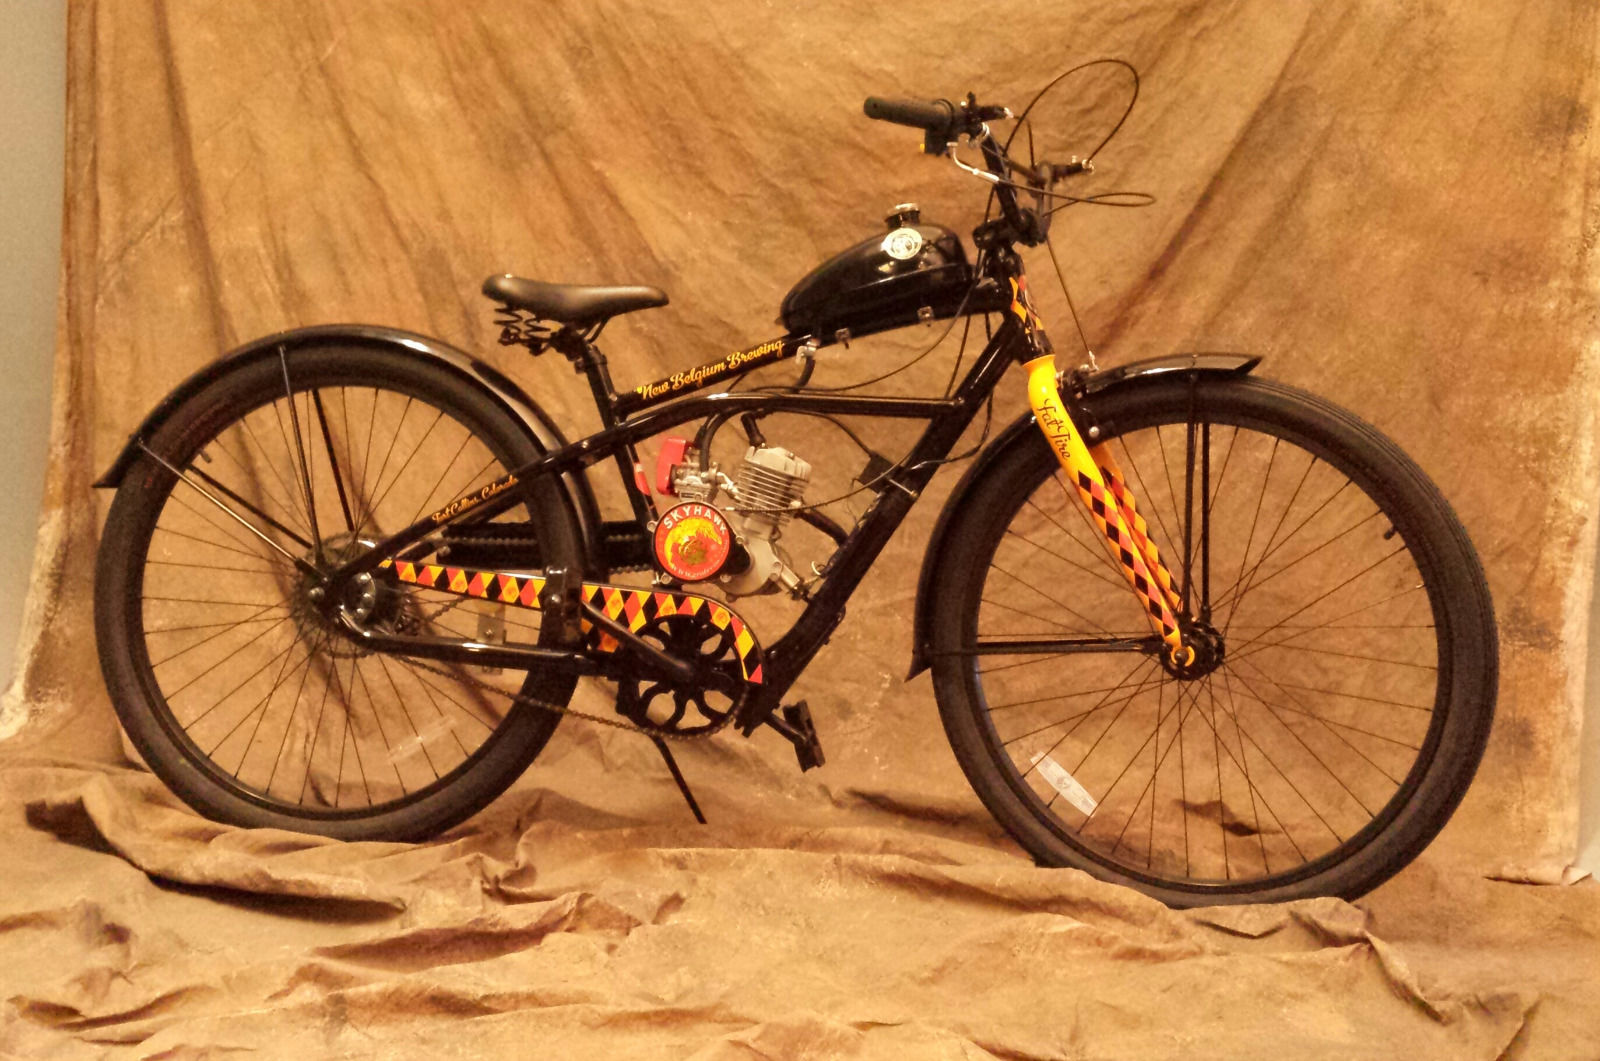 2013 Collectable Fat Tire Bicycle W/motor kit for sale